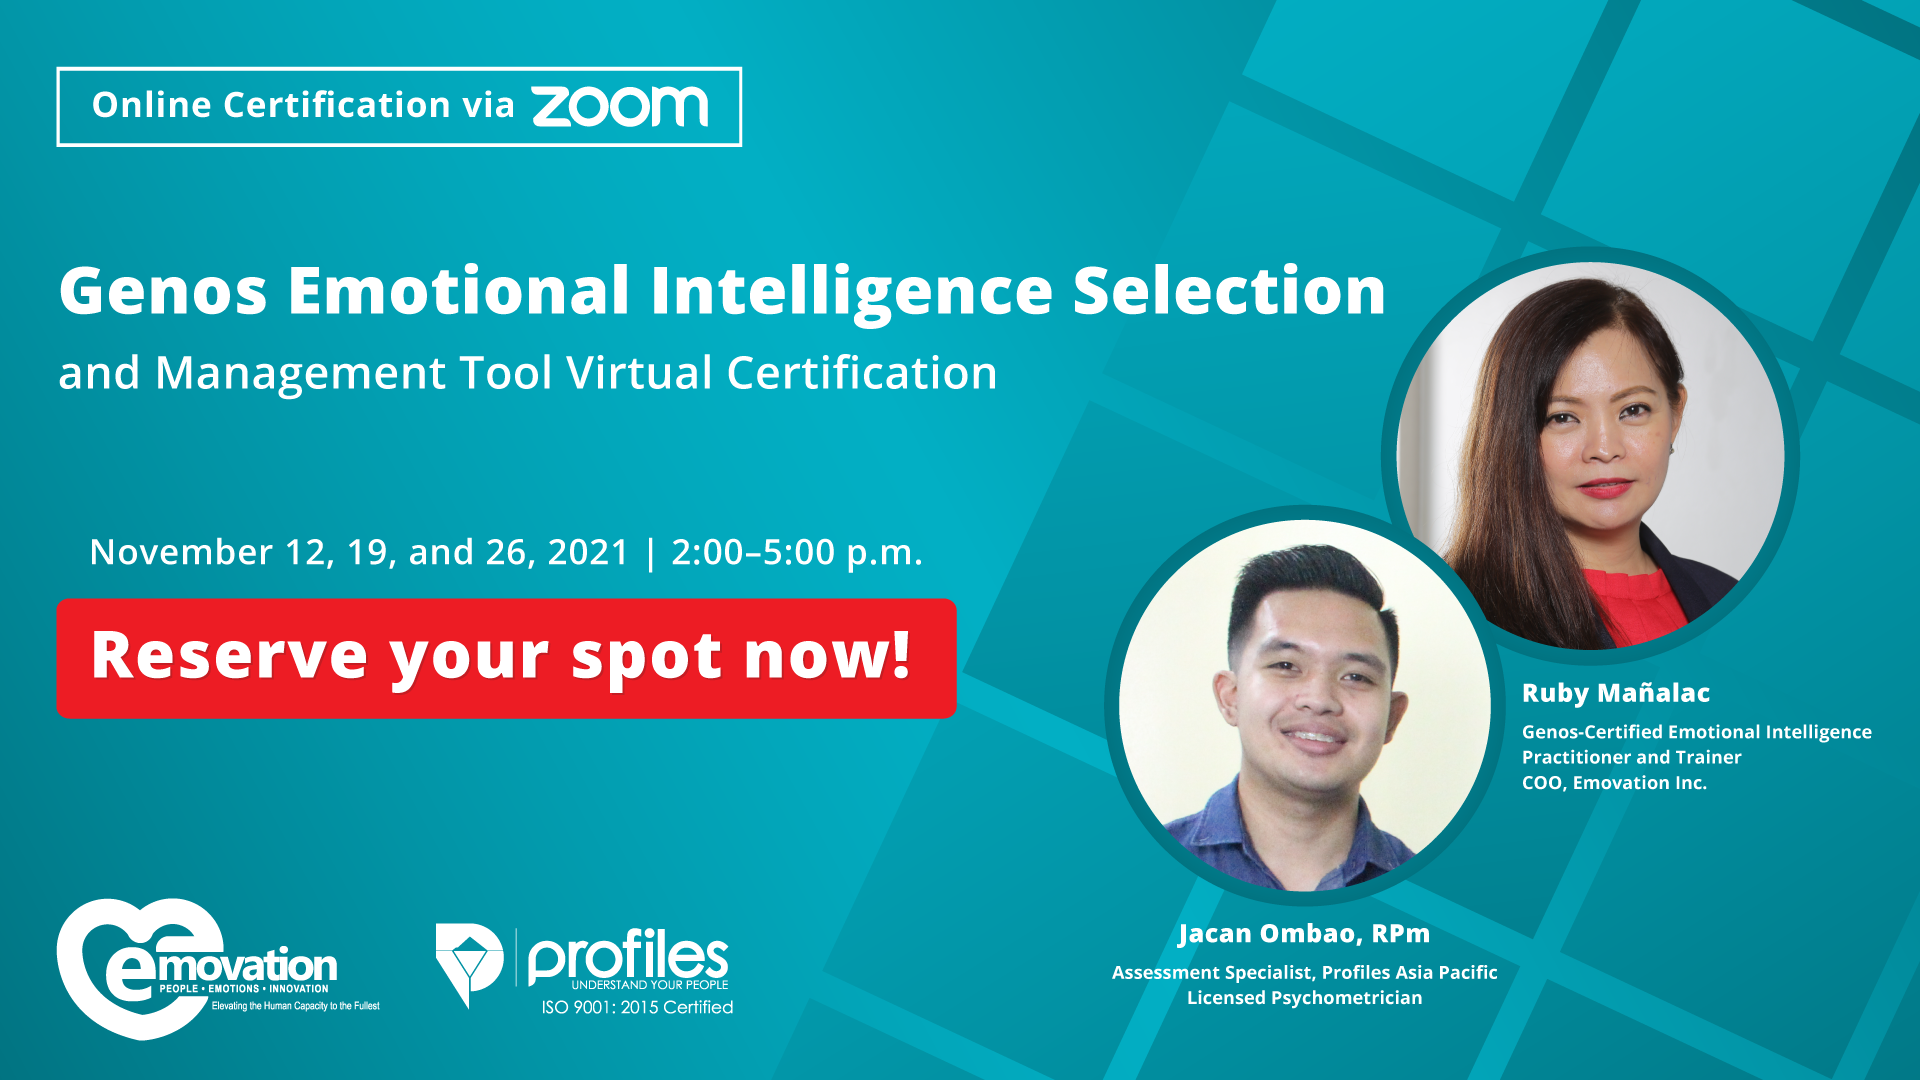 Genos Emotional Intelligence Selection and Management Tool Virtual Certification